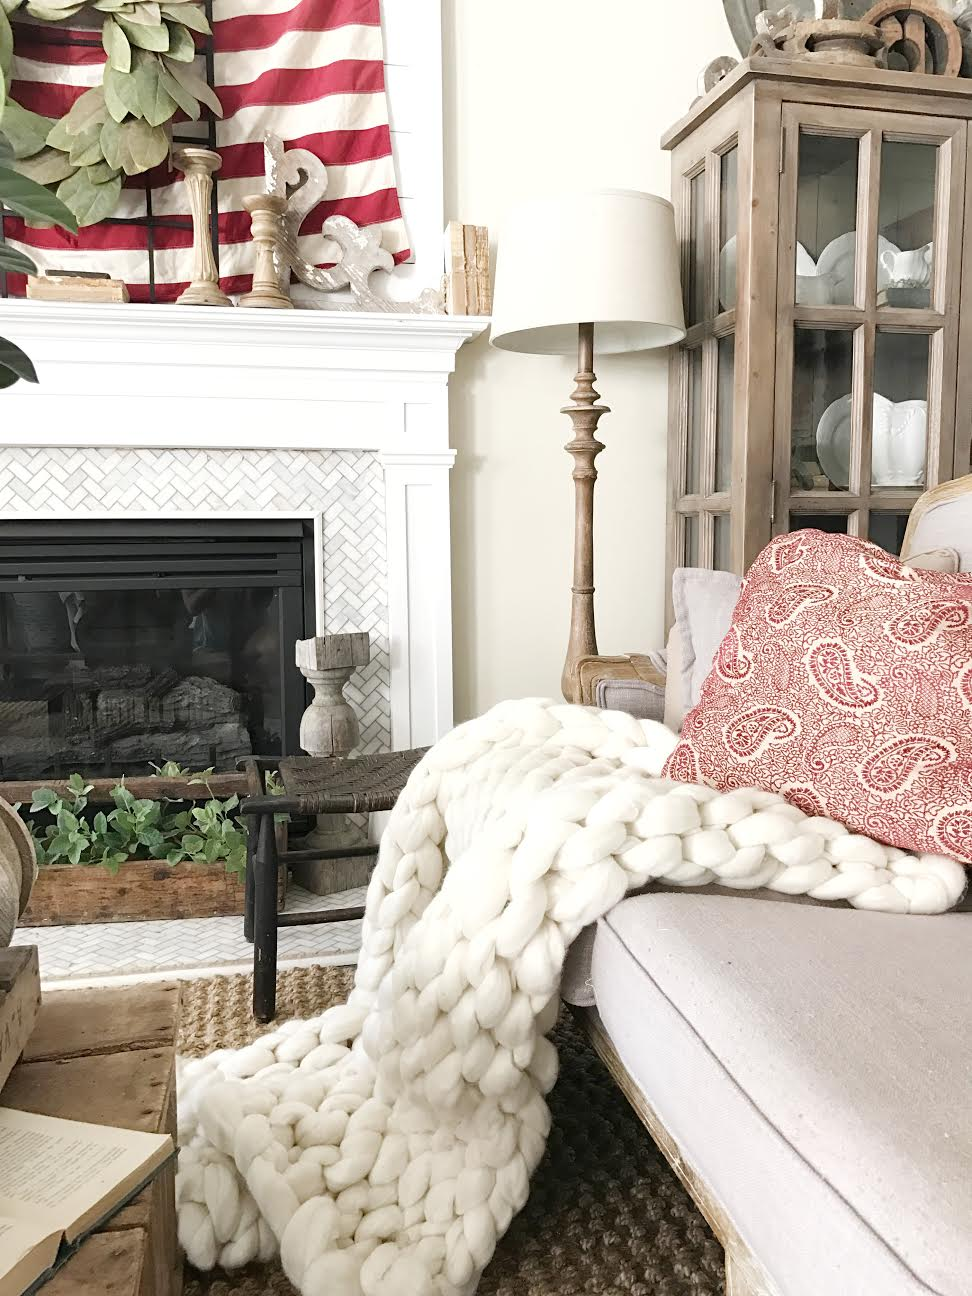 Fourth of July Living Room Decor with Artisen Home Chunky Knit Blanket